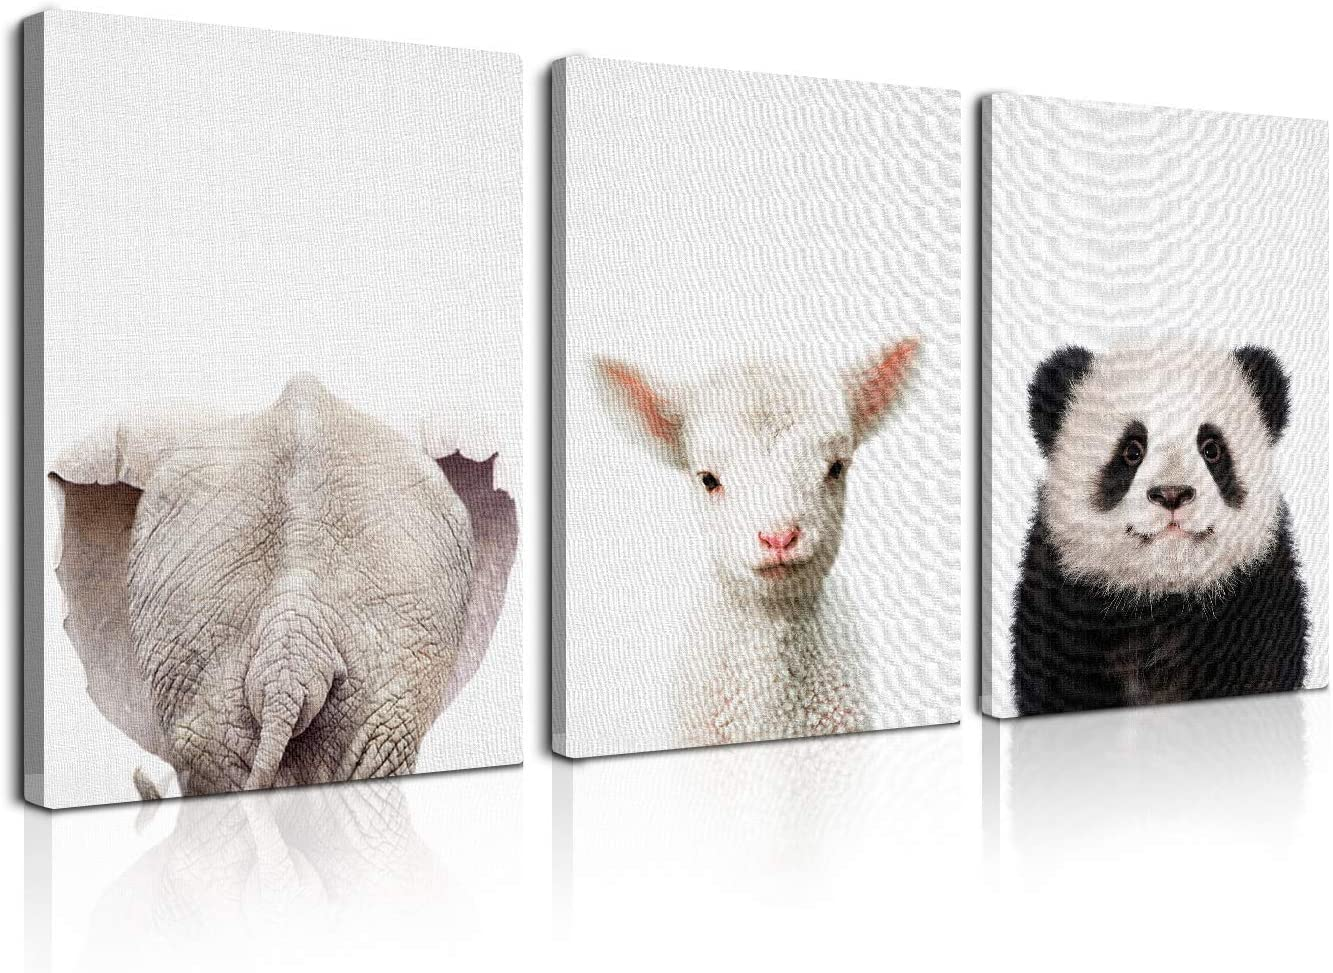 3 Pcs Framed Cute Funny Animal Wall Art Decor Lovely Animals Waterproof Canvas Poster Painting for Kids Bedroom Pet Shop Decor Ready to Hang (12x18Inchx3Pcs)